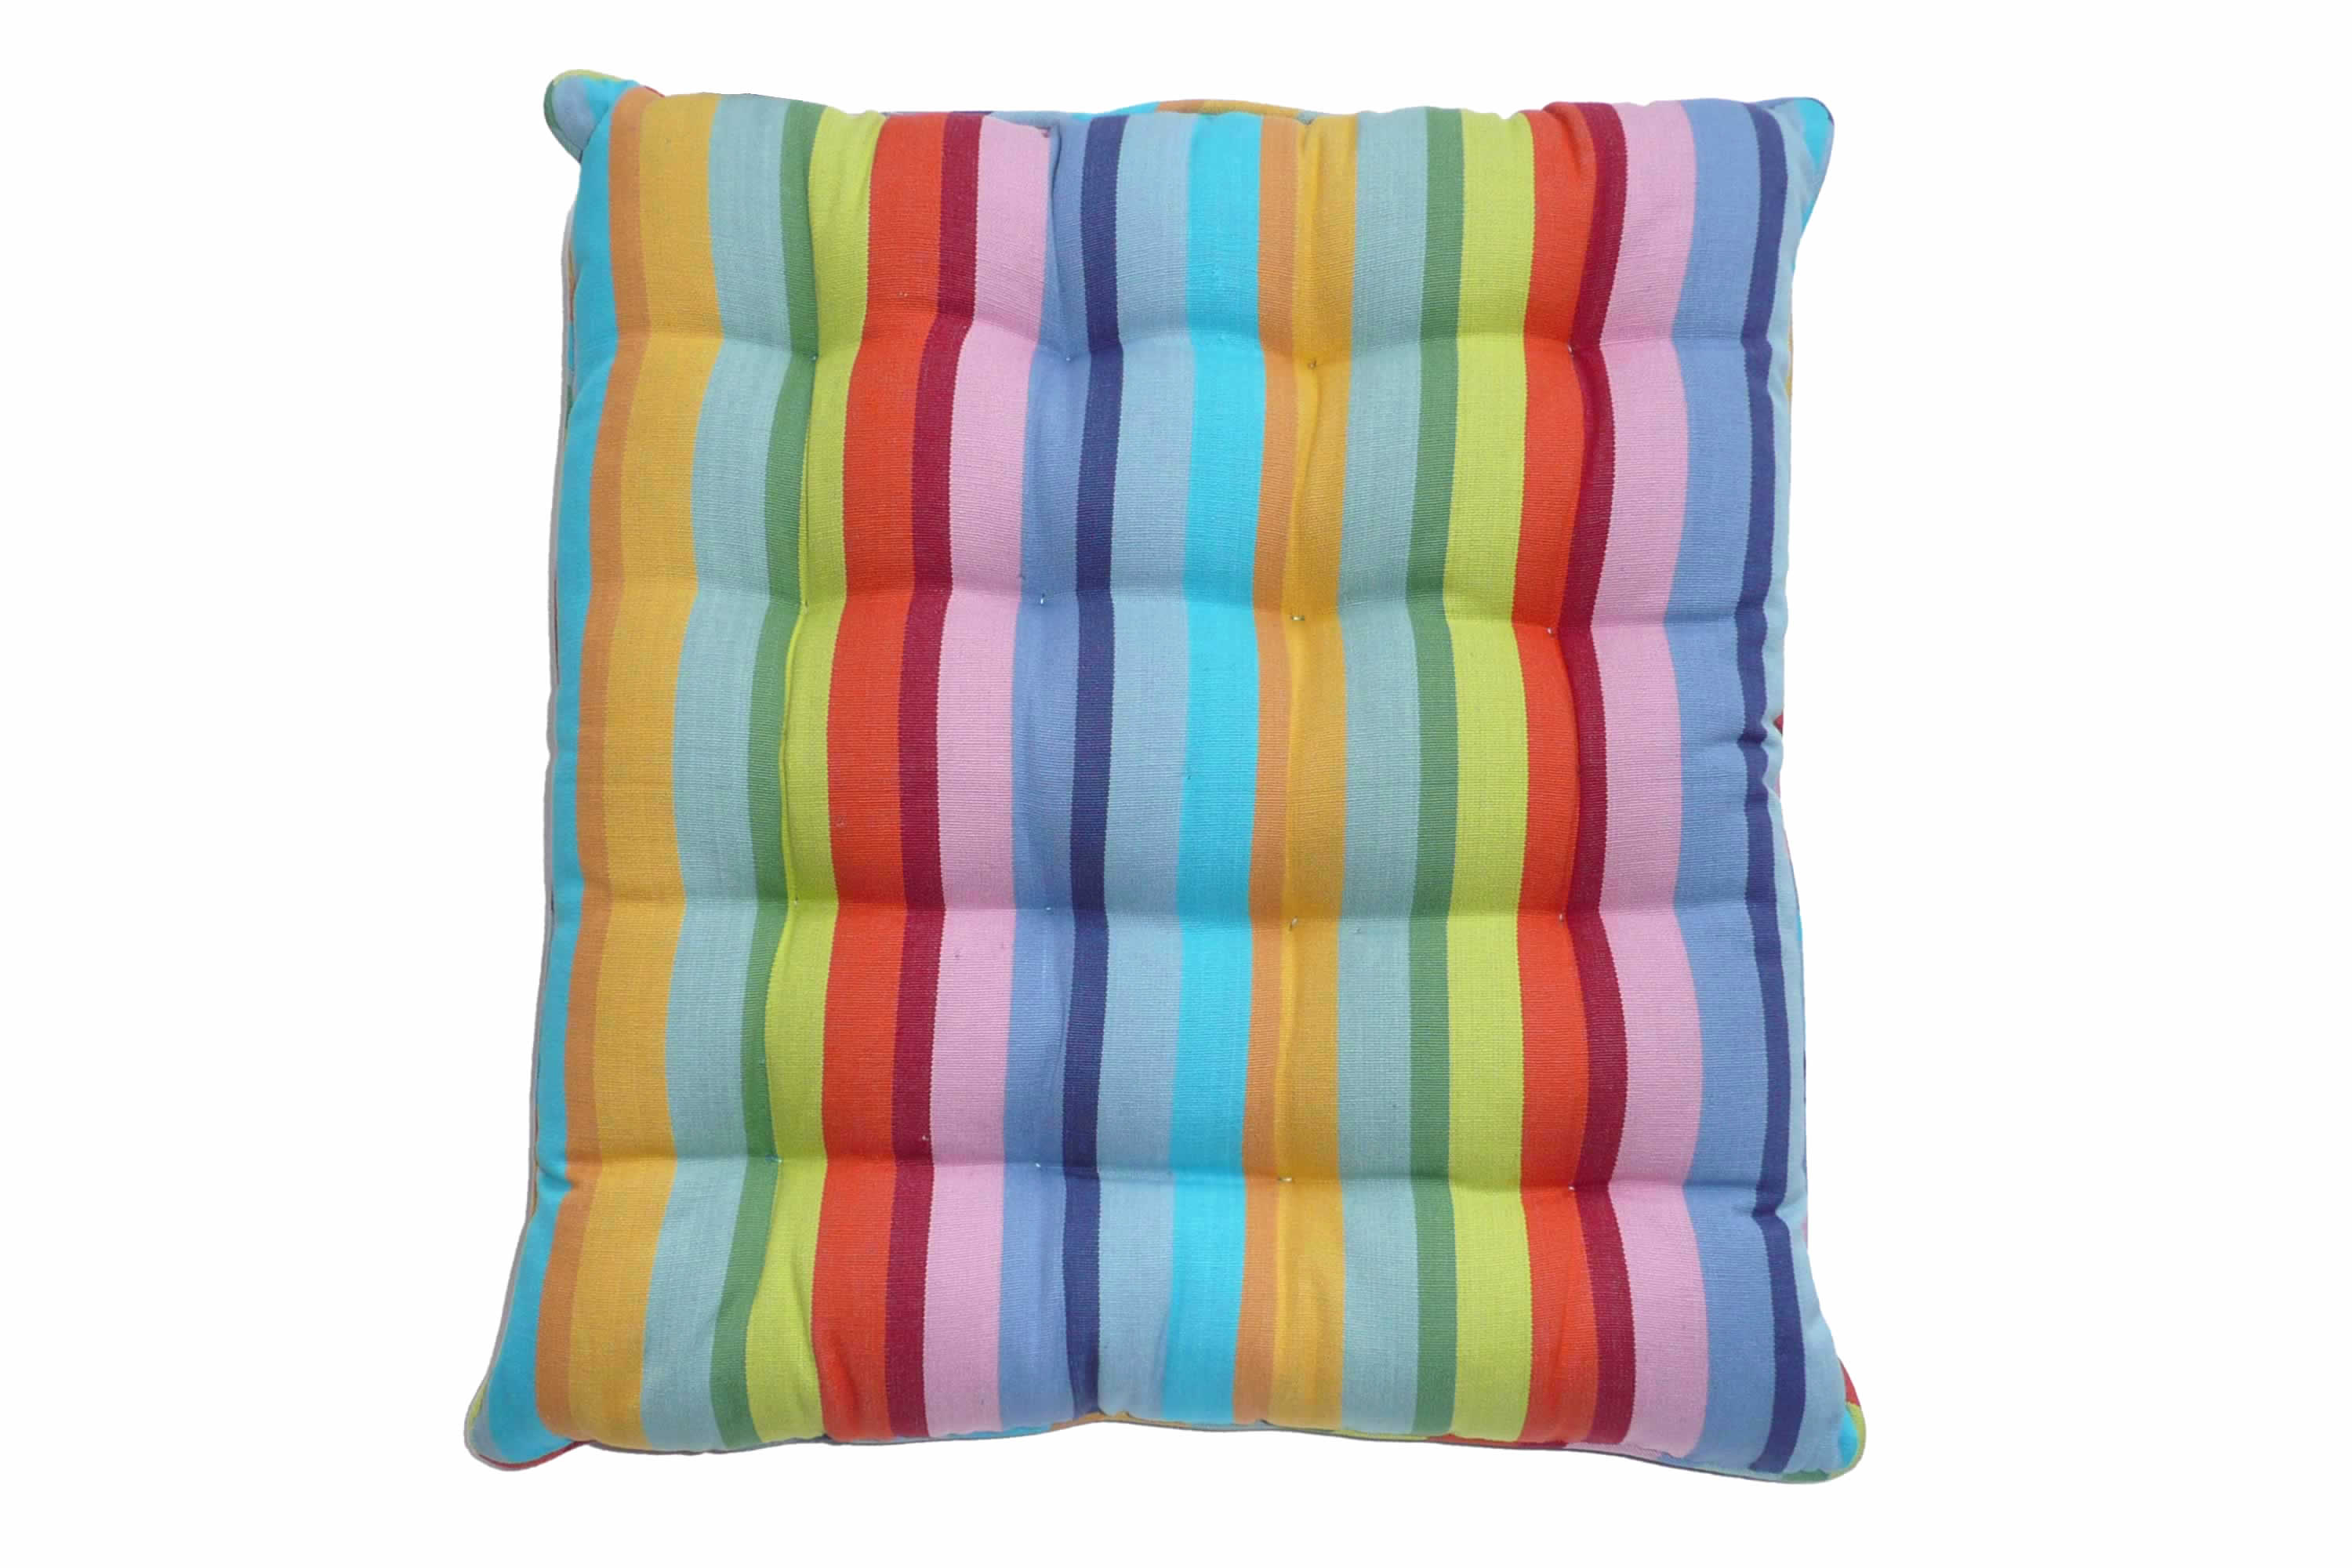 Striped Seat Pads with Piping Rainbow Stripes